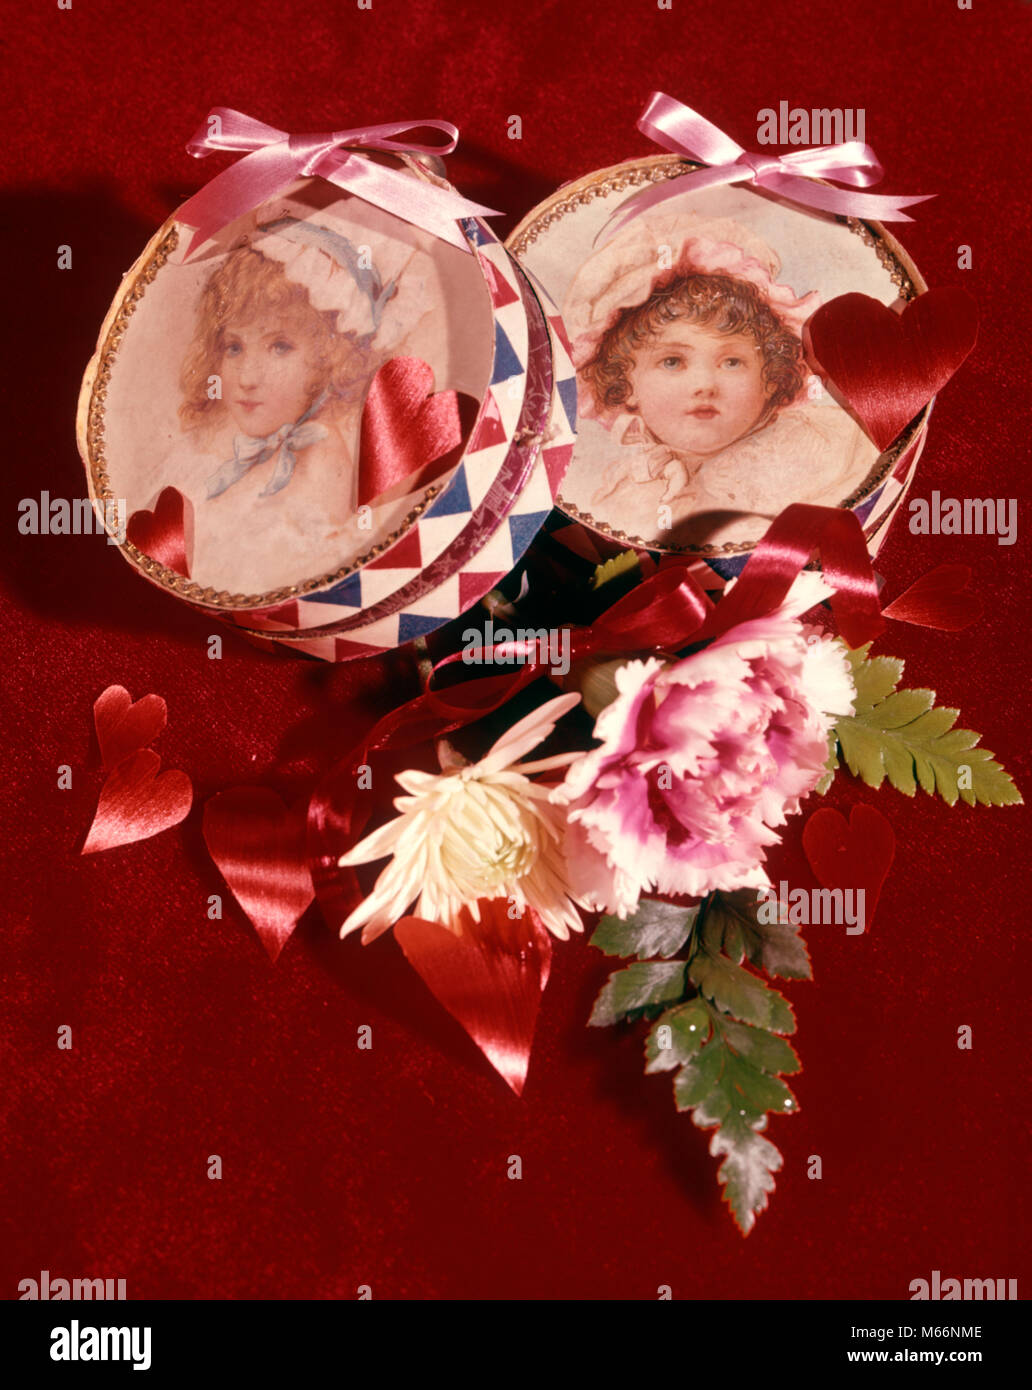 Valentines Day Boxes Presents Portraits Little Girls Flowers Hearts